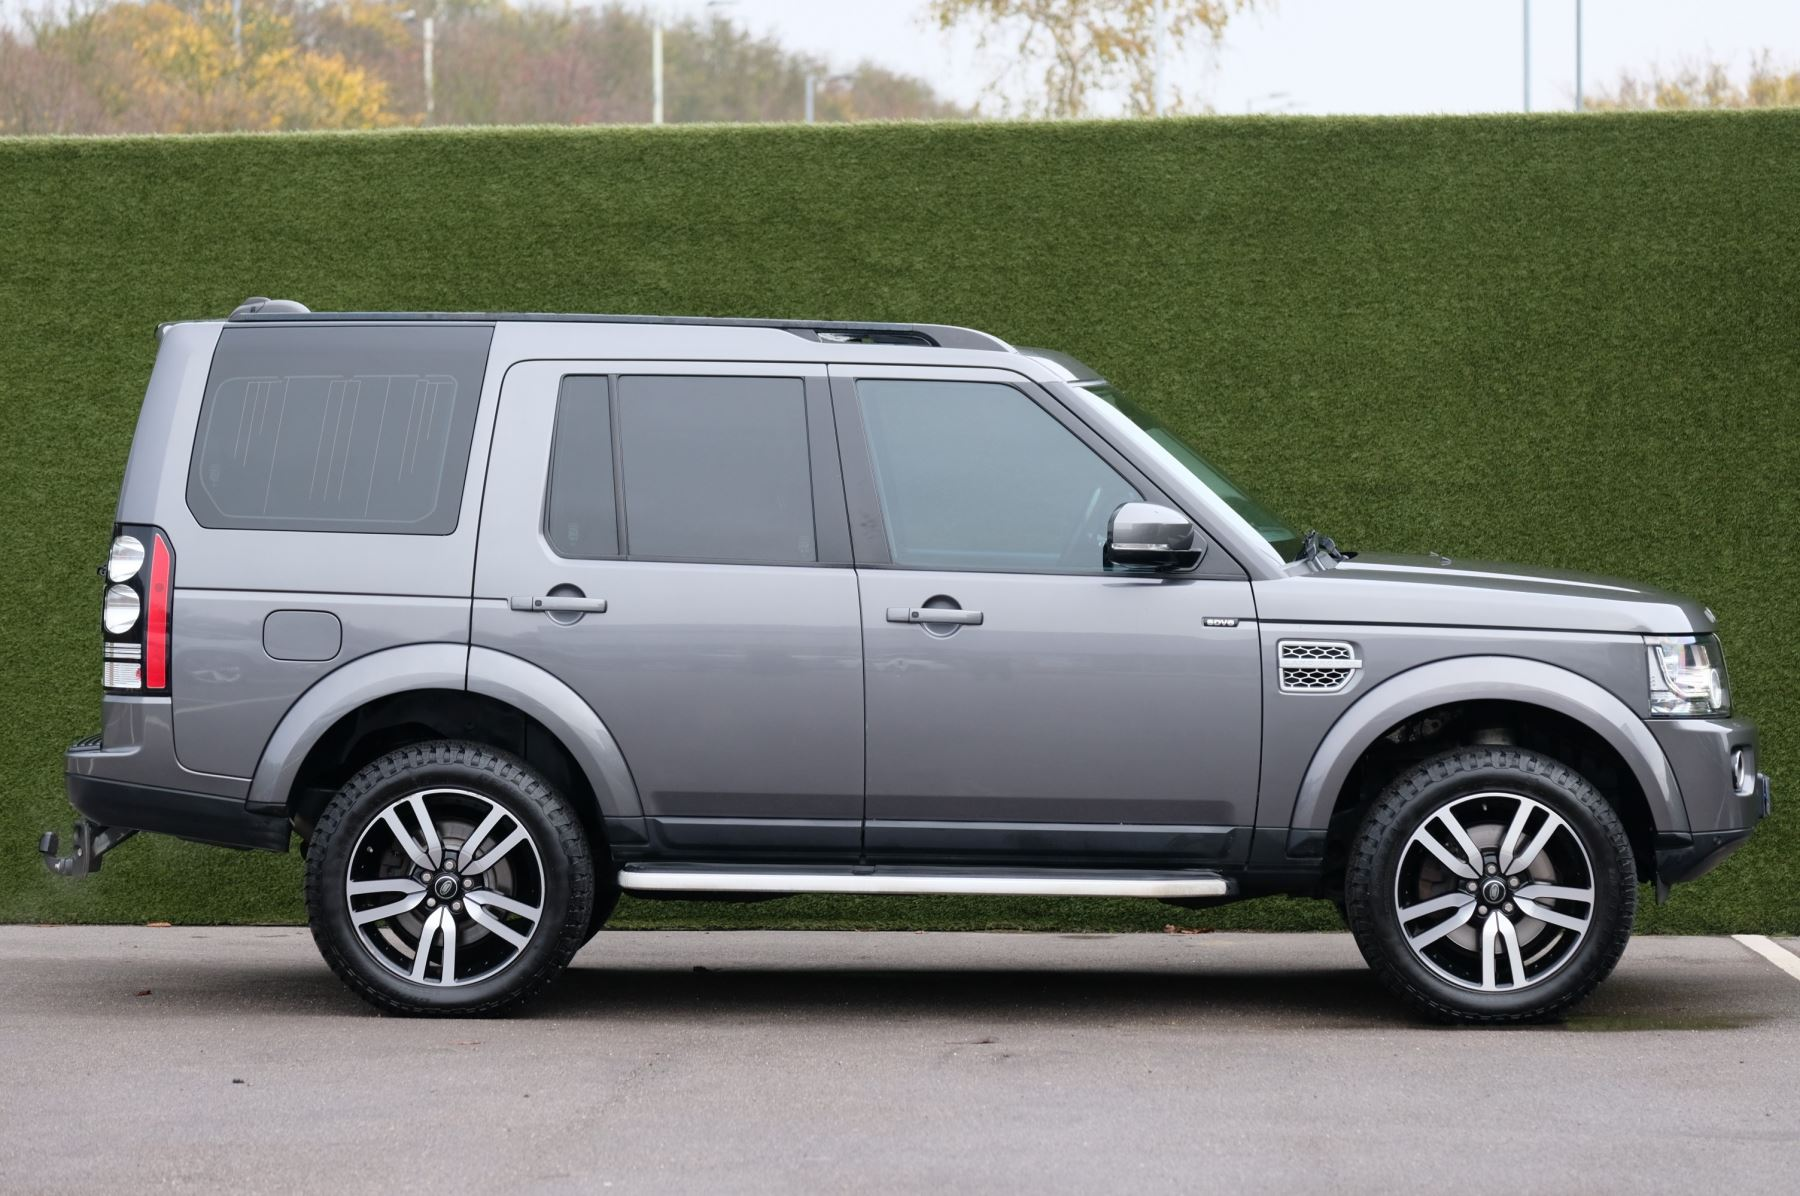 Land Rover Discovery 0.0 3.0 SDV6 HSE Luxury 5dr